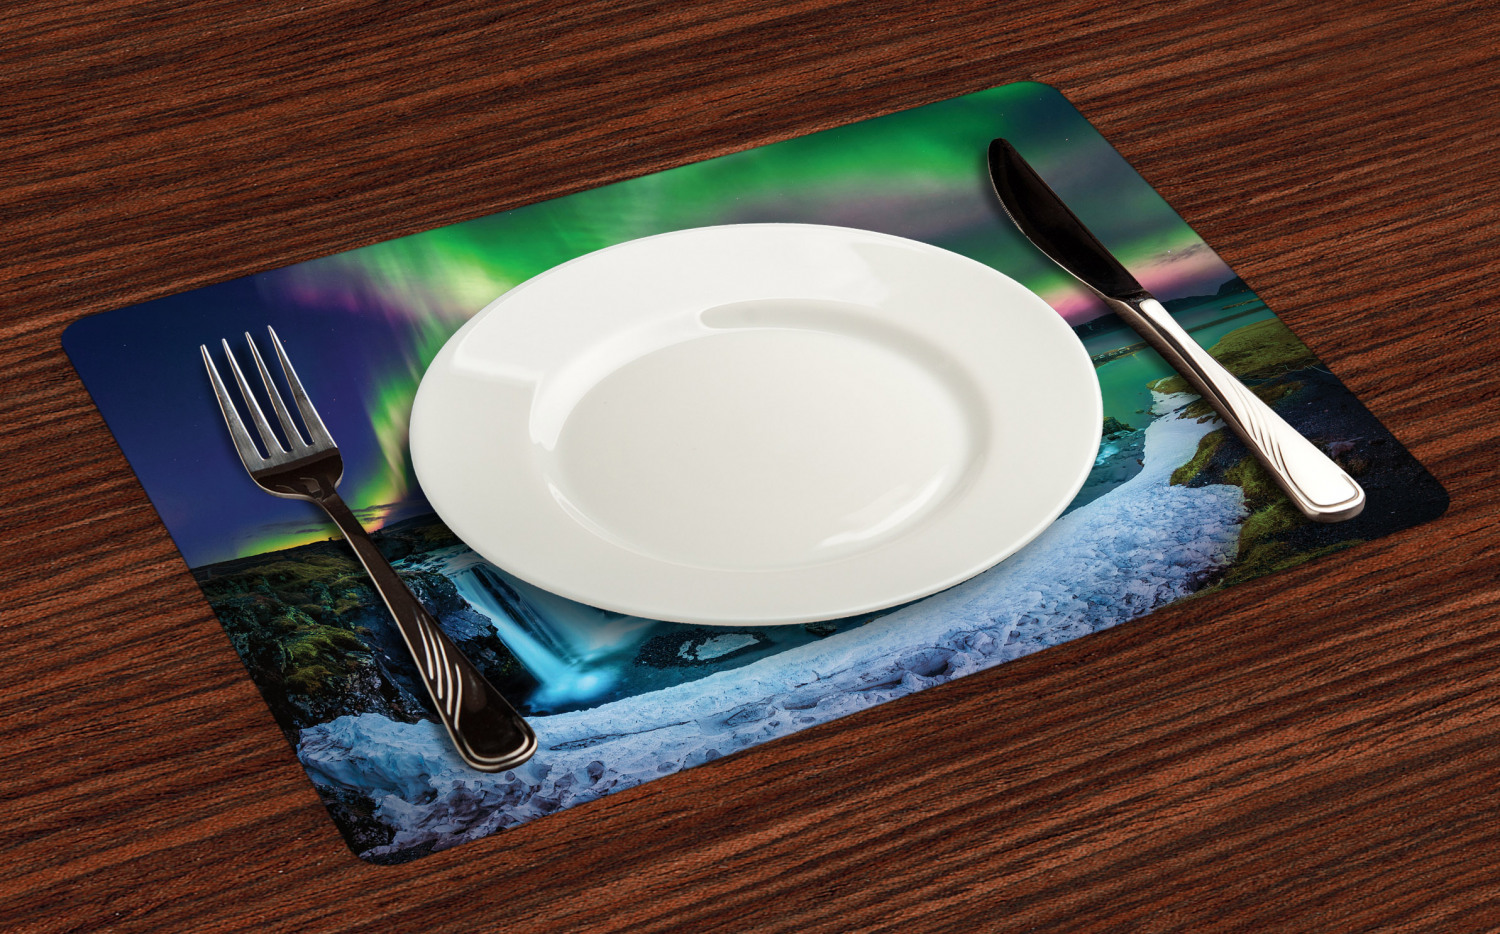 Ambesonne-Fabric-Place-Mats-Set-of-4-Placemats-for-Dining-Room-and-Kitchen-Table thumbnail 9